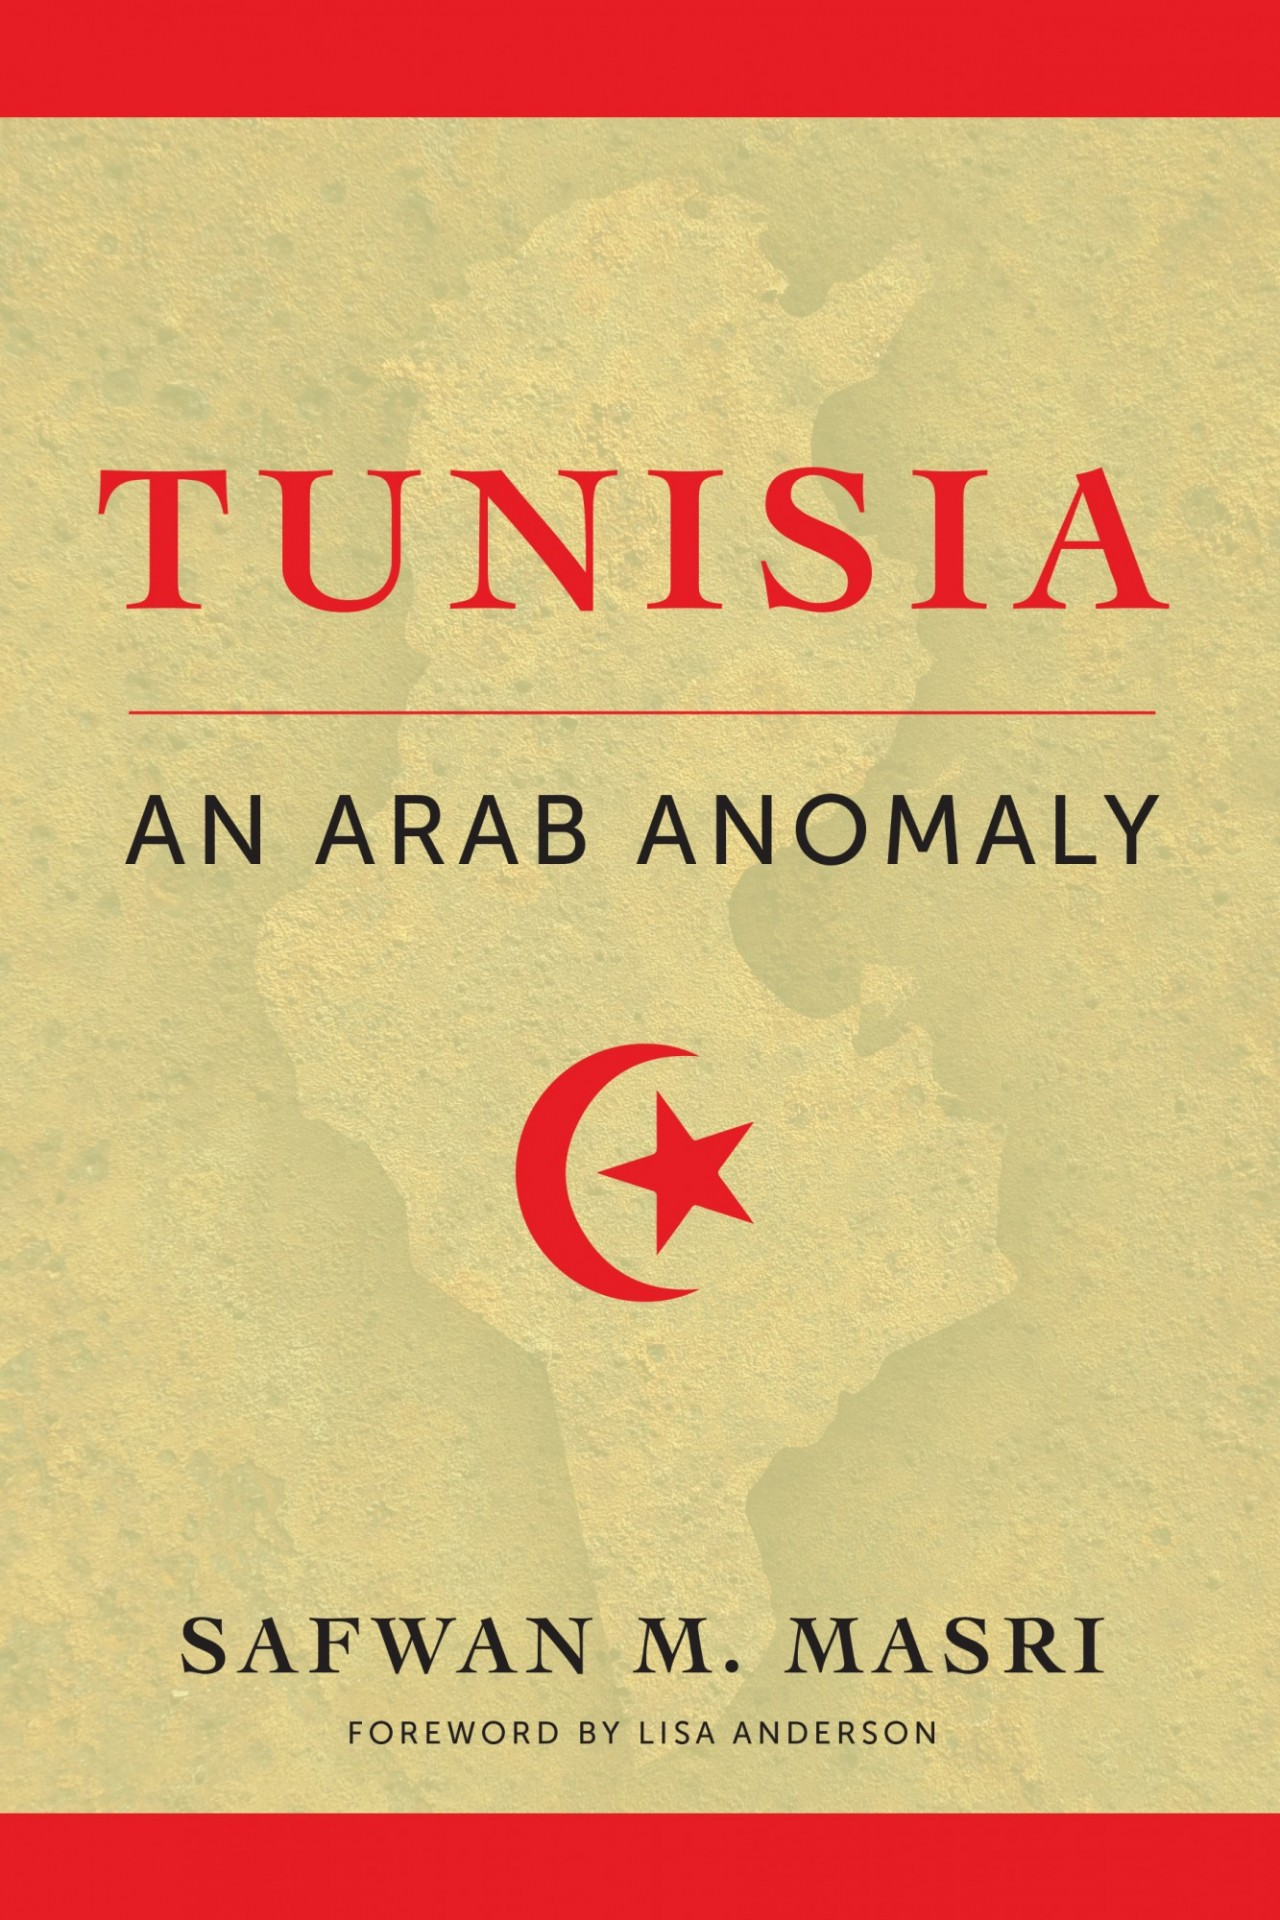 Book cover for Tunisia: An Arab Anomaly